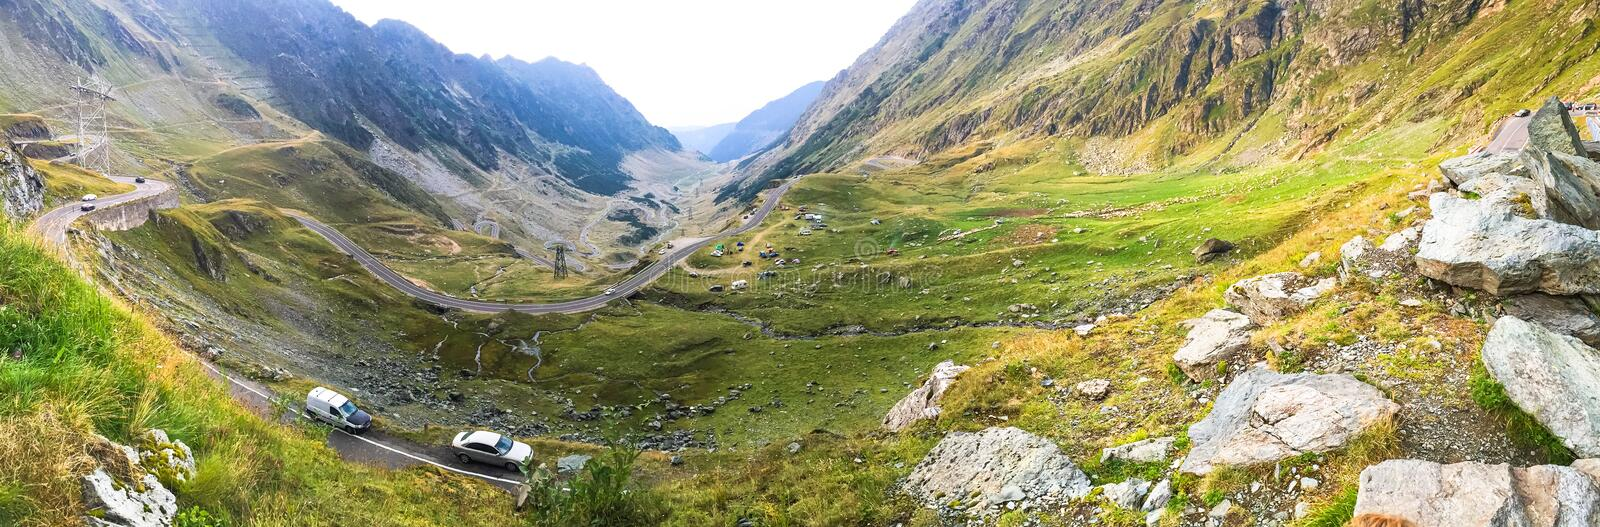 Transfagarasan road in Romania. The winding 90 km Transfagarasan road through the mountains of Romania built in 1974 royalty free stock images